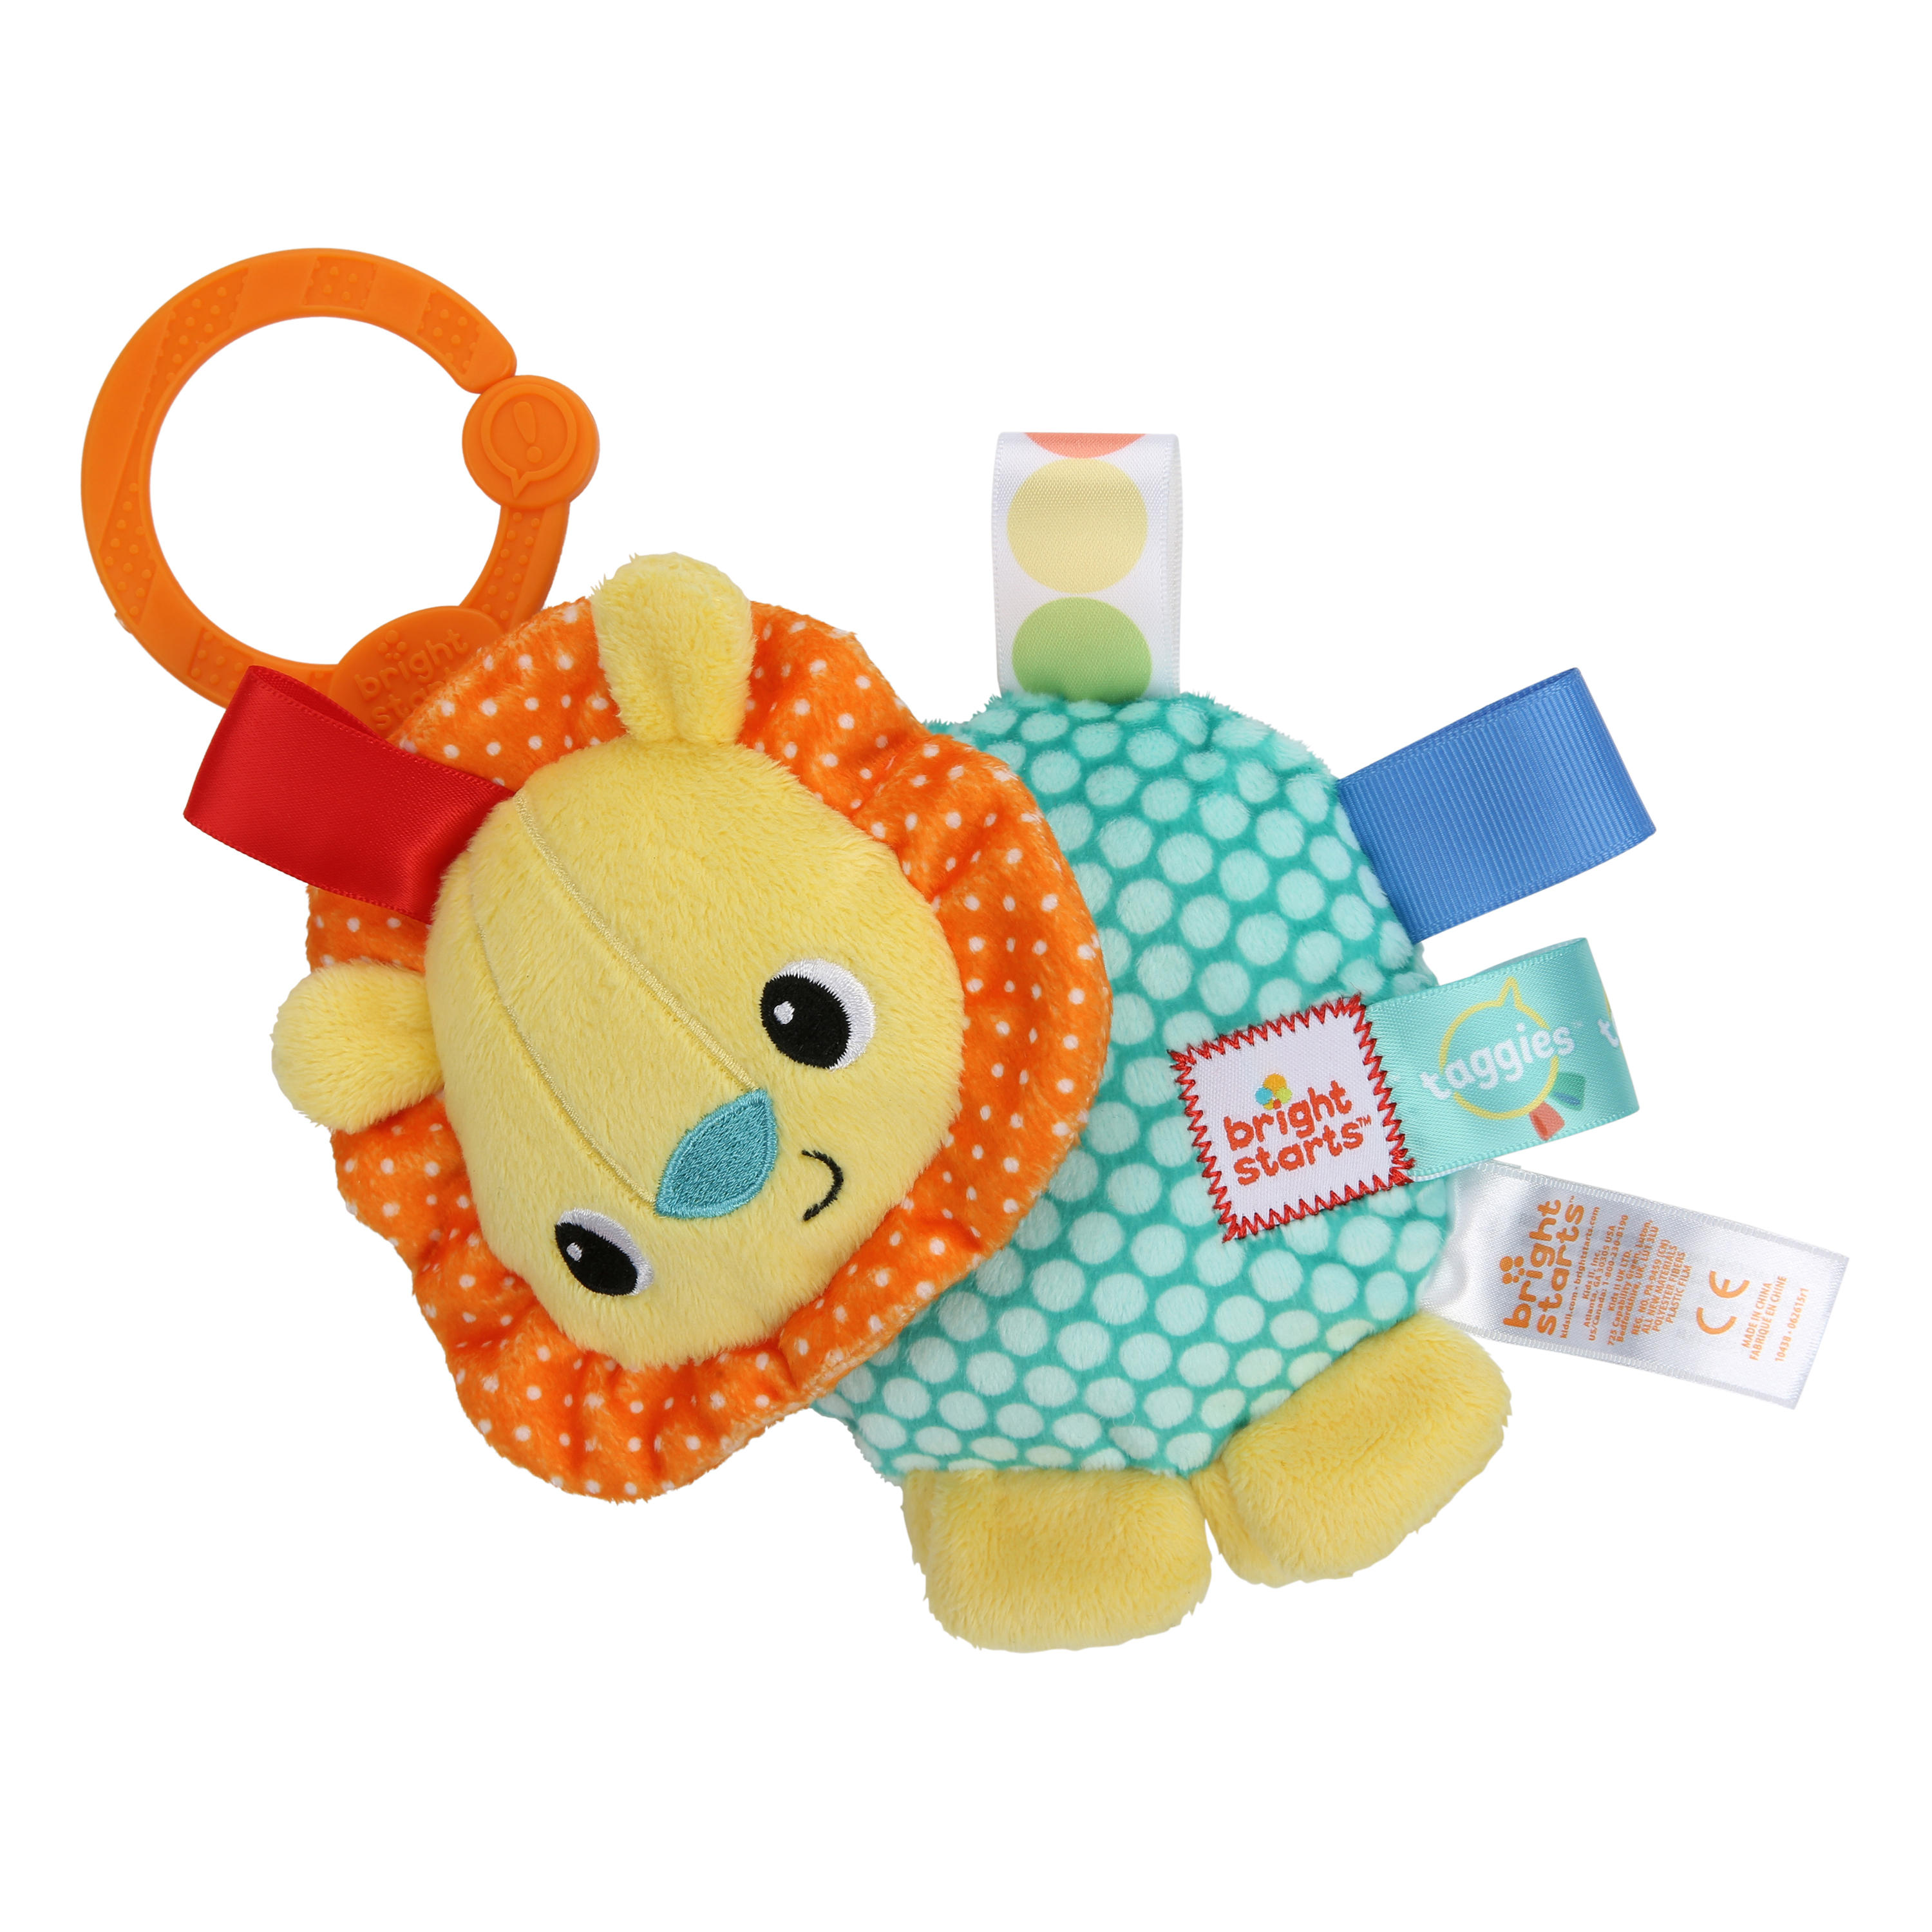 Tags 'n Activities™ Gift Set